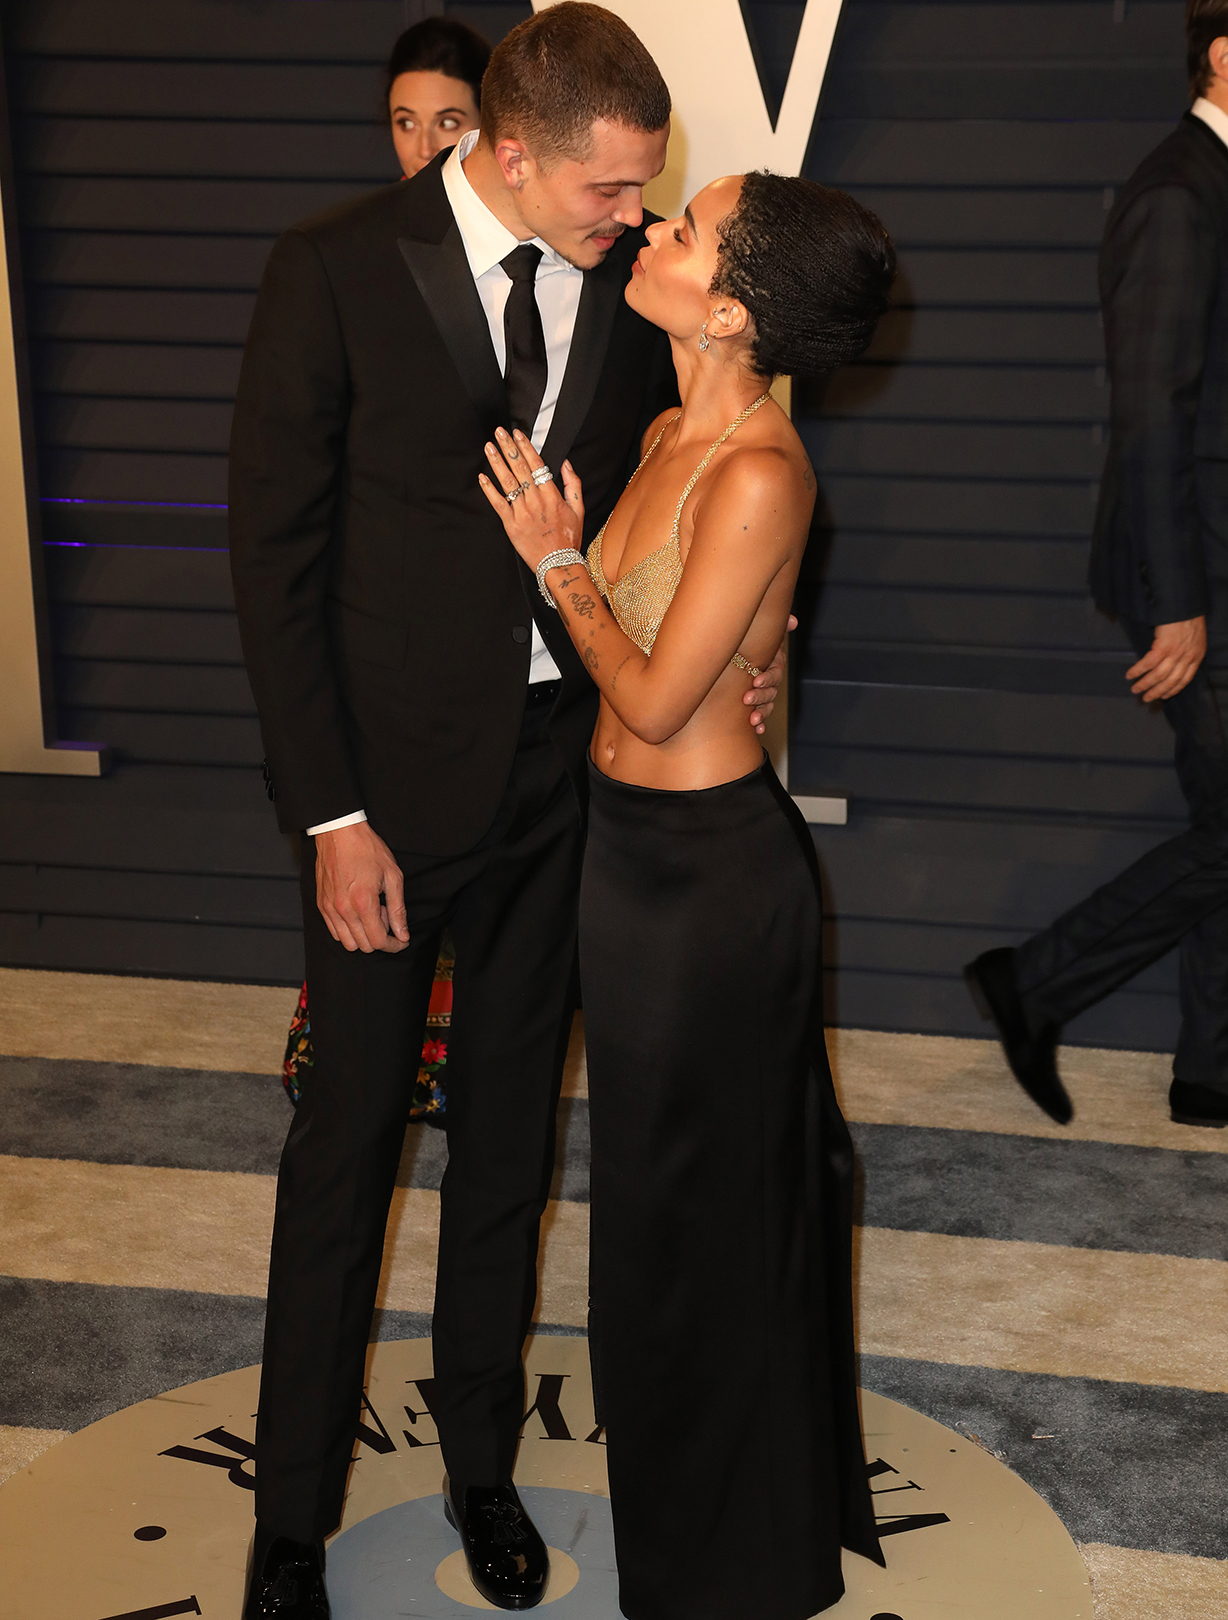 Zoe Kravitz marries Karl Glusman